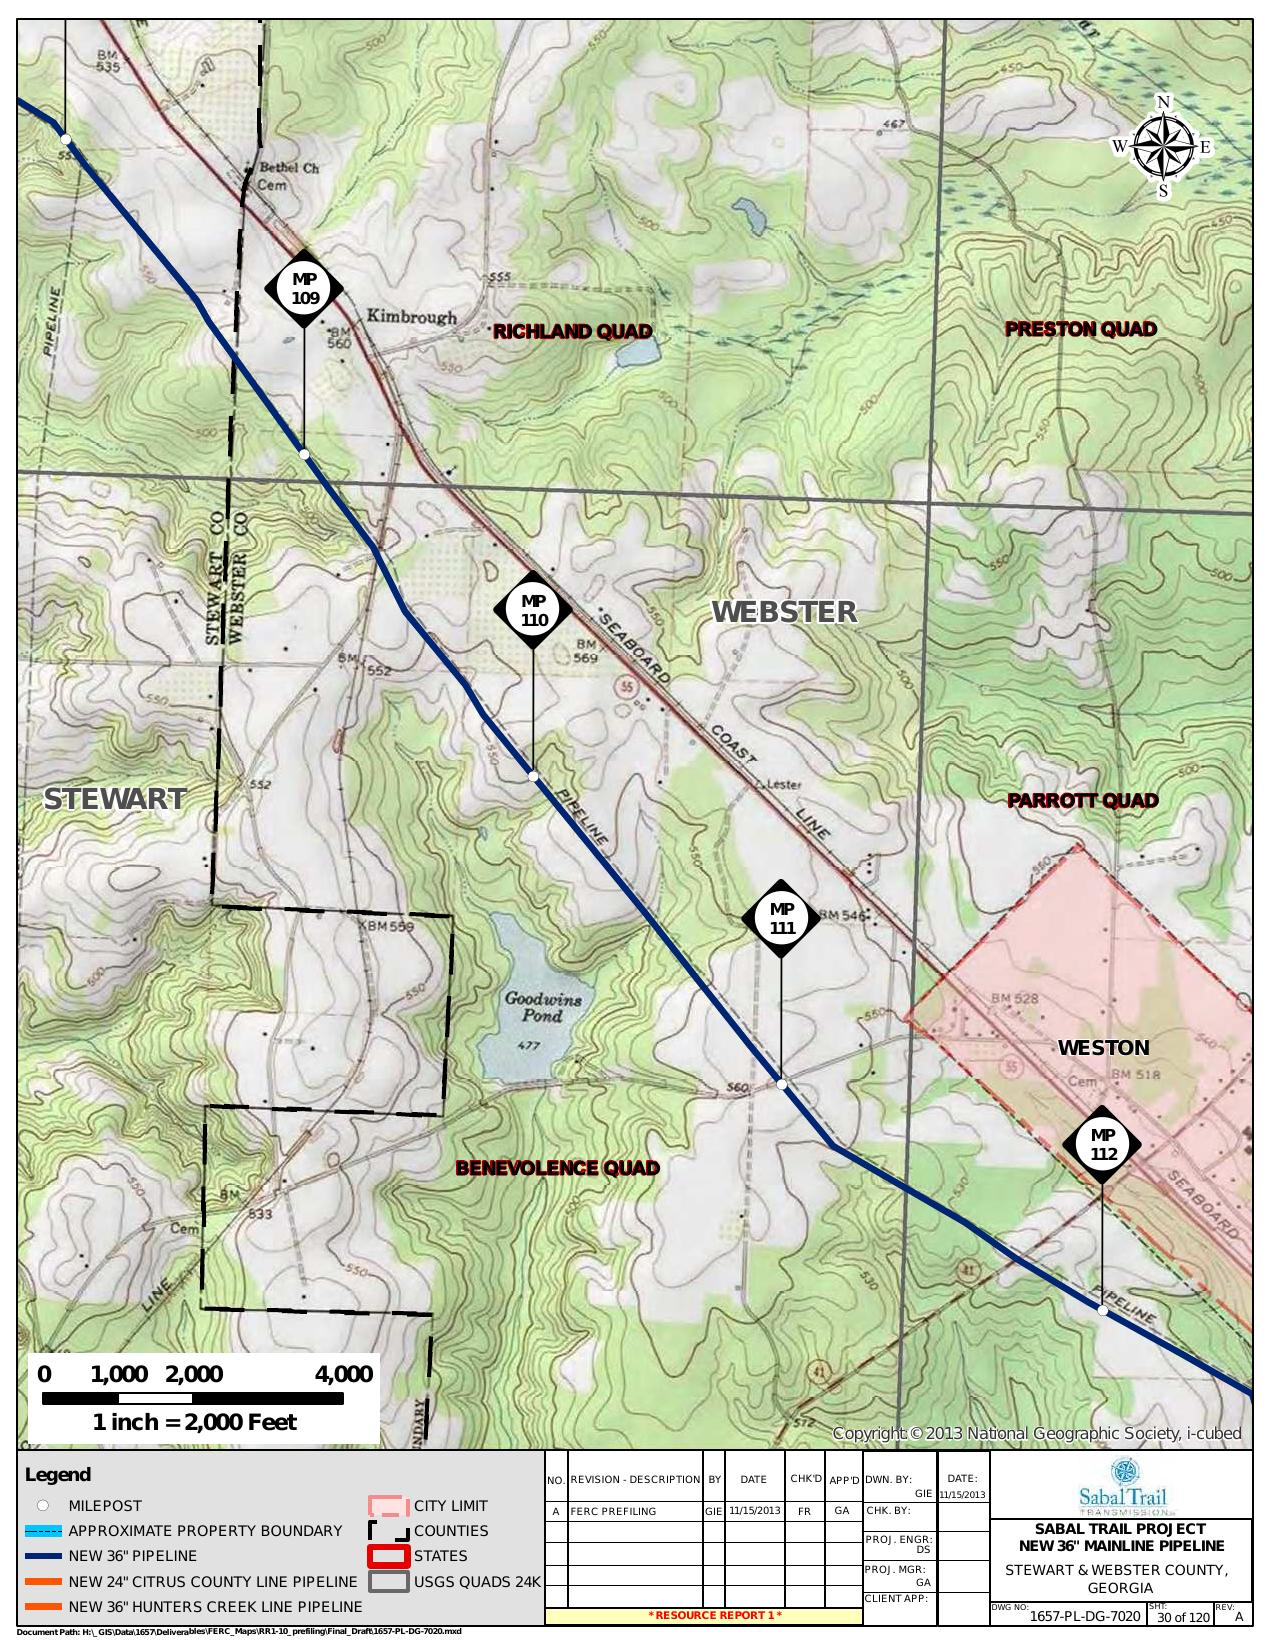 Weston, Stewart and Webster County, Georgia, in General Project Description, by SpectraBusters, for FERC Docket No. PF14-1-000, 15 November 2013, converted by SpectraBusters